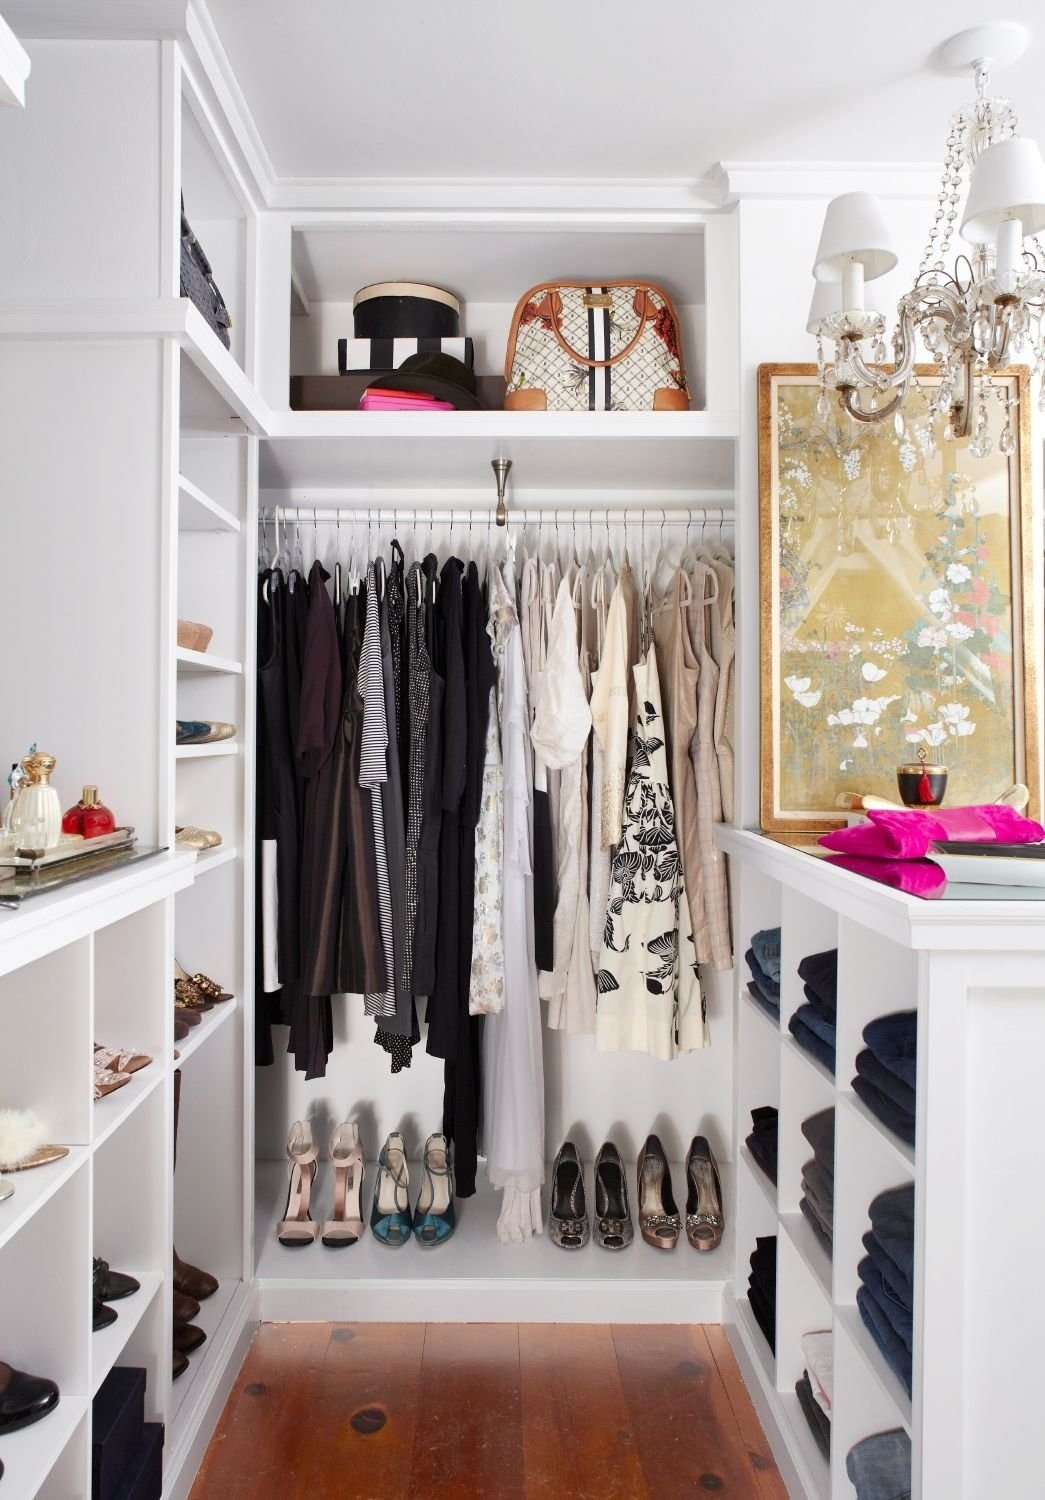 10 Amazing Walk In Closet Design Ideas 12 small walk in closet ideas and organizer designs closet designs 2